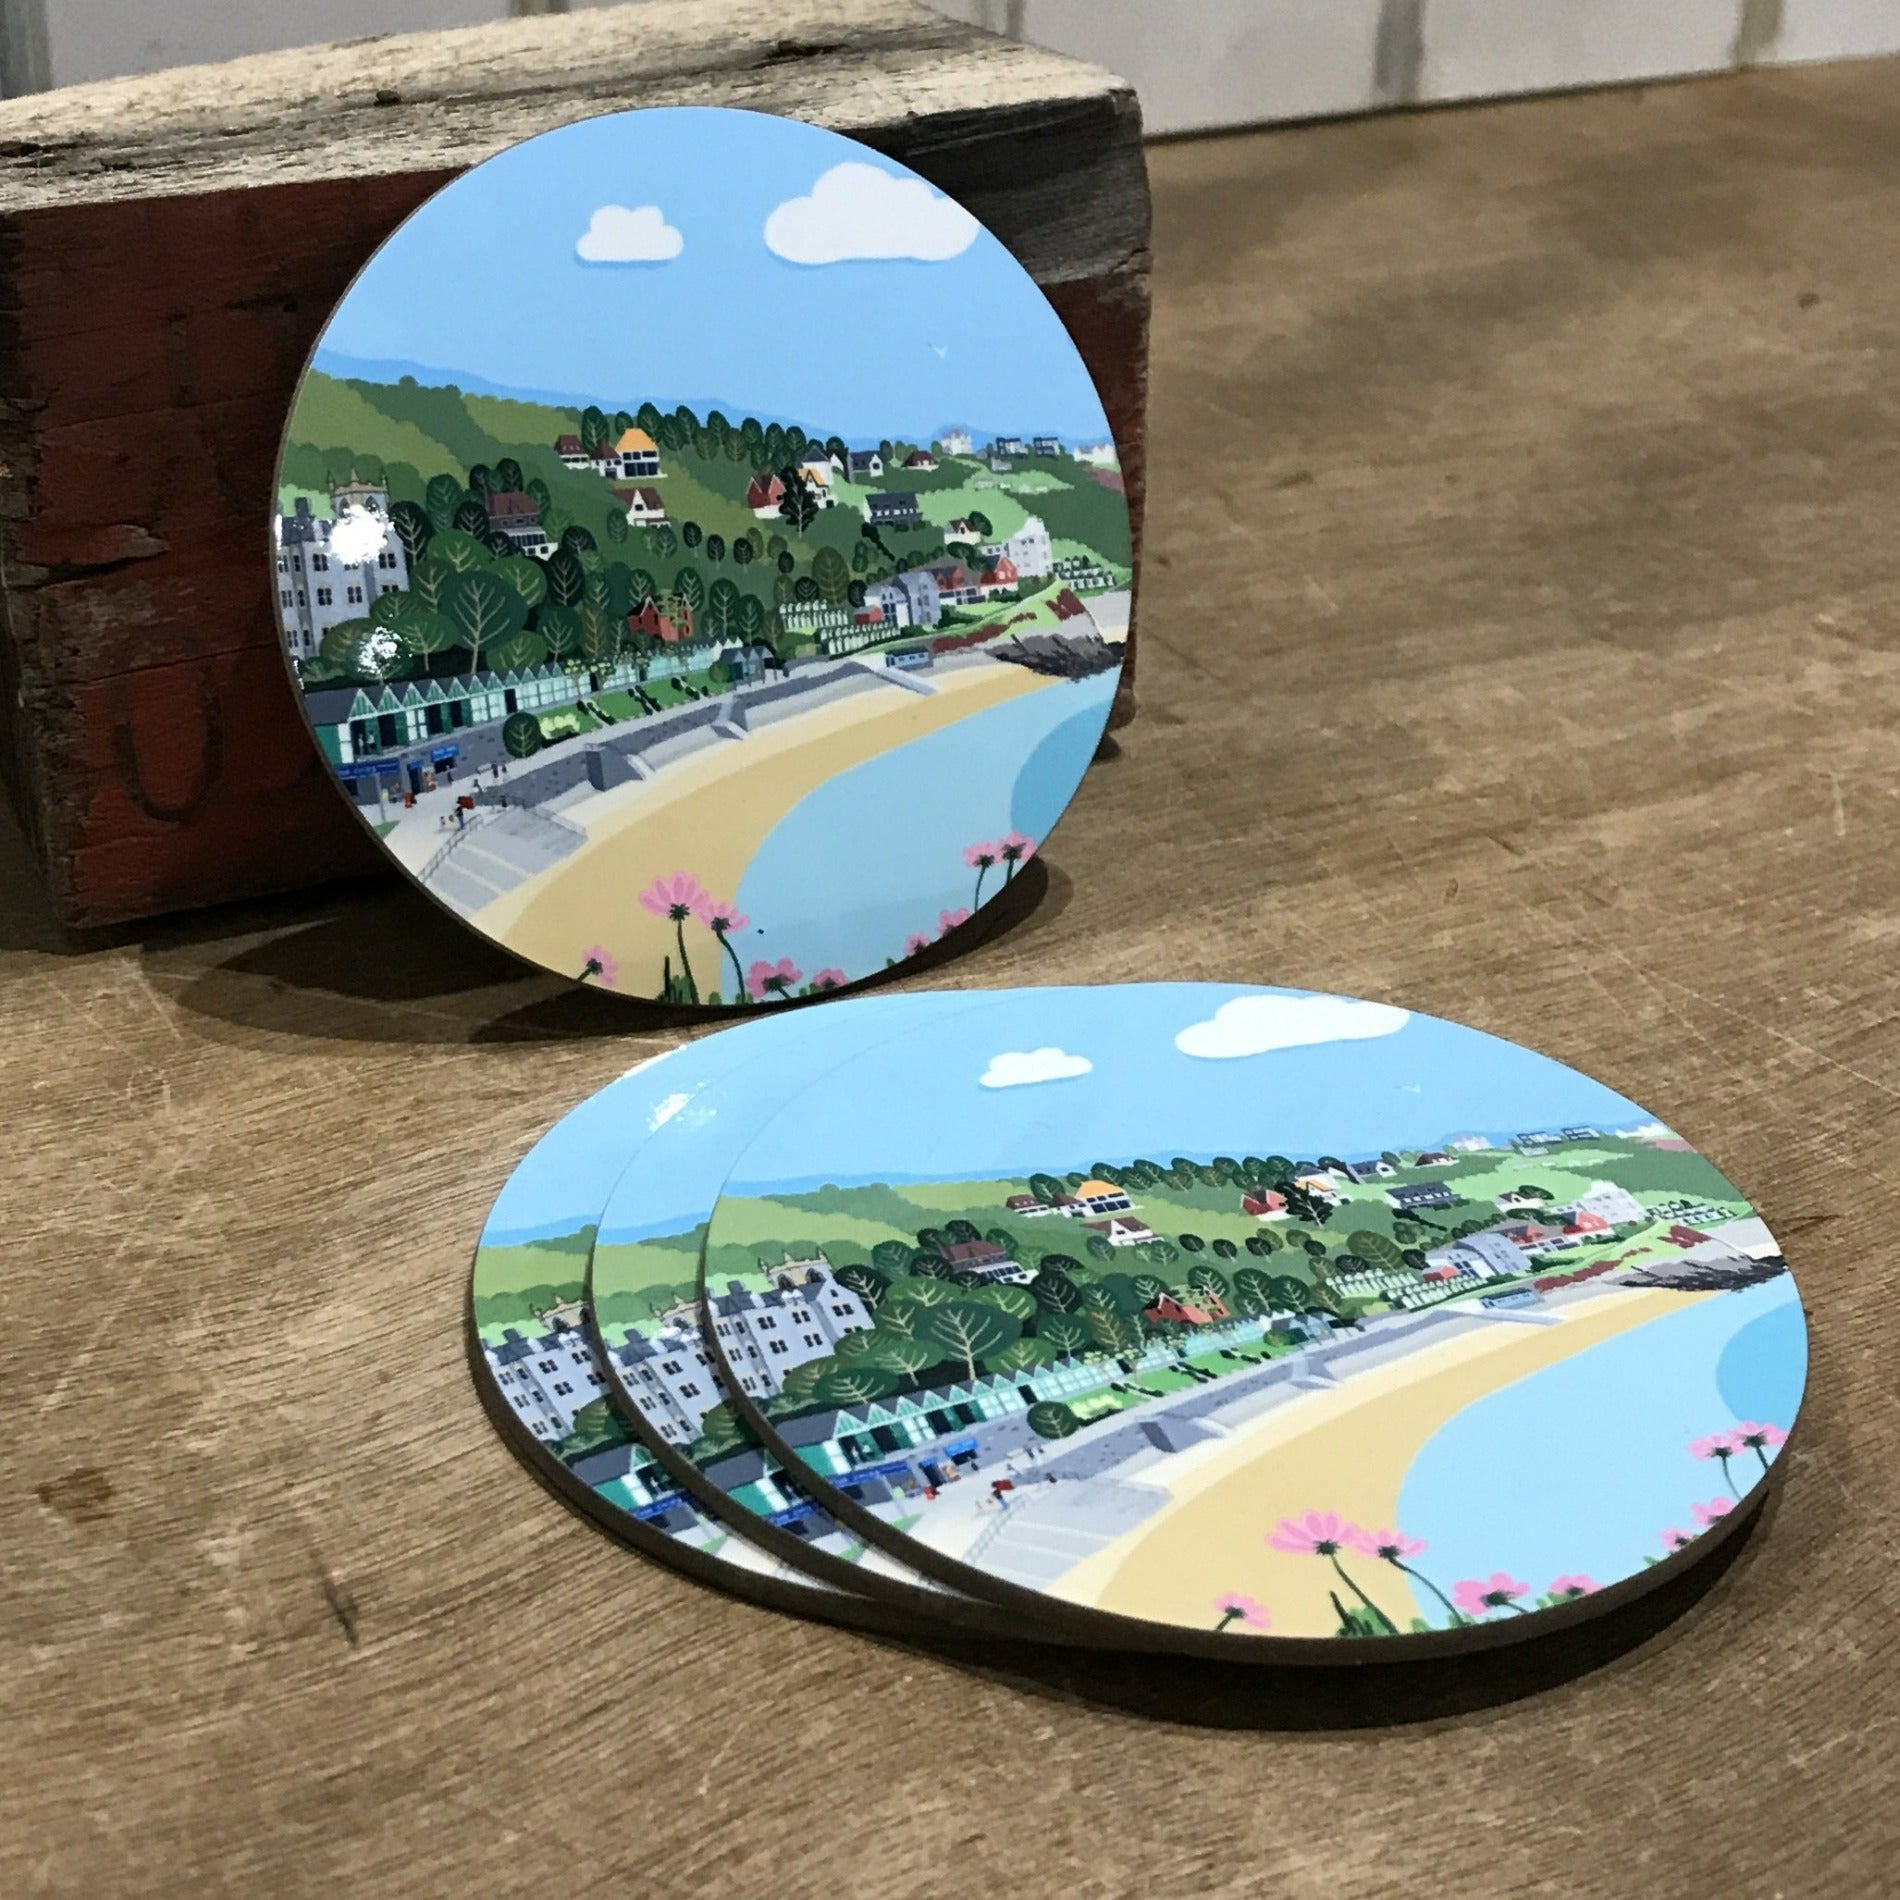 1 Langland Bay Coaster RD 10cm sold on behalf of Noodle Design